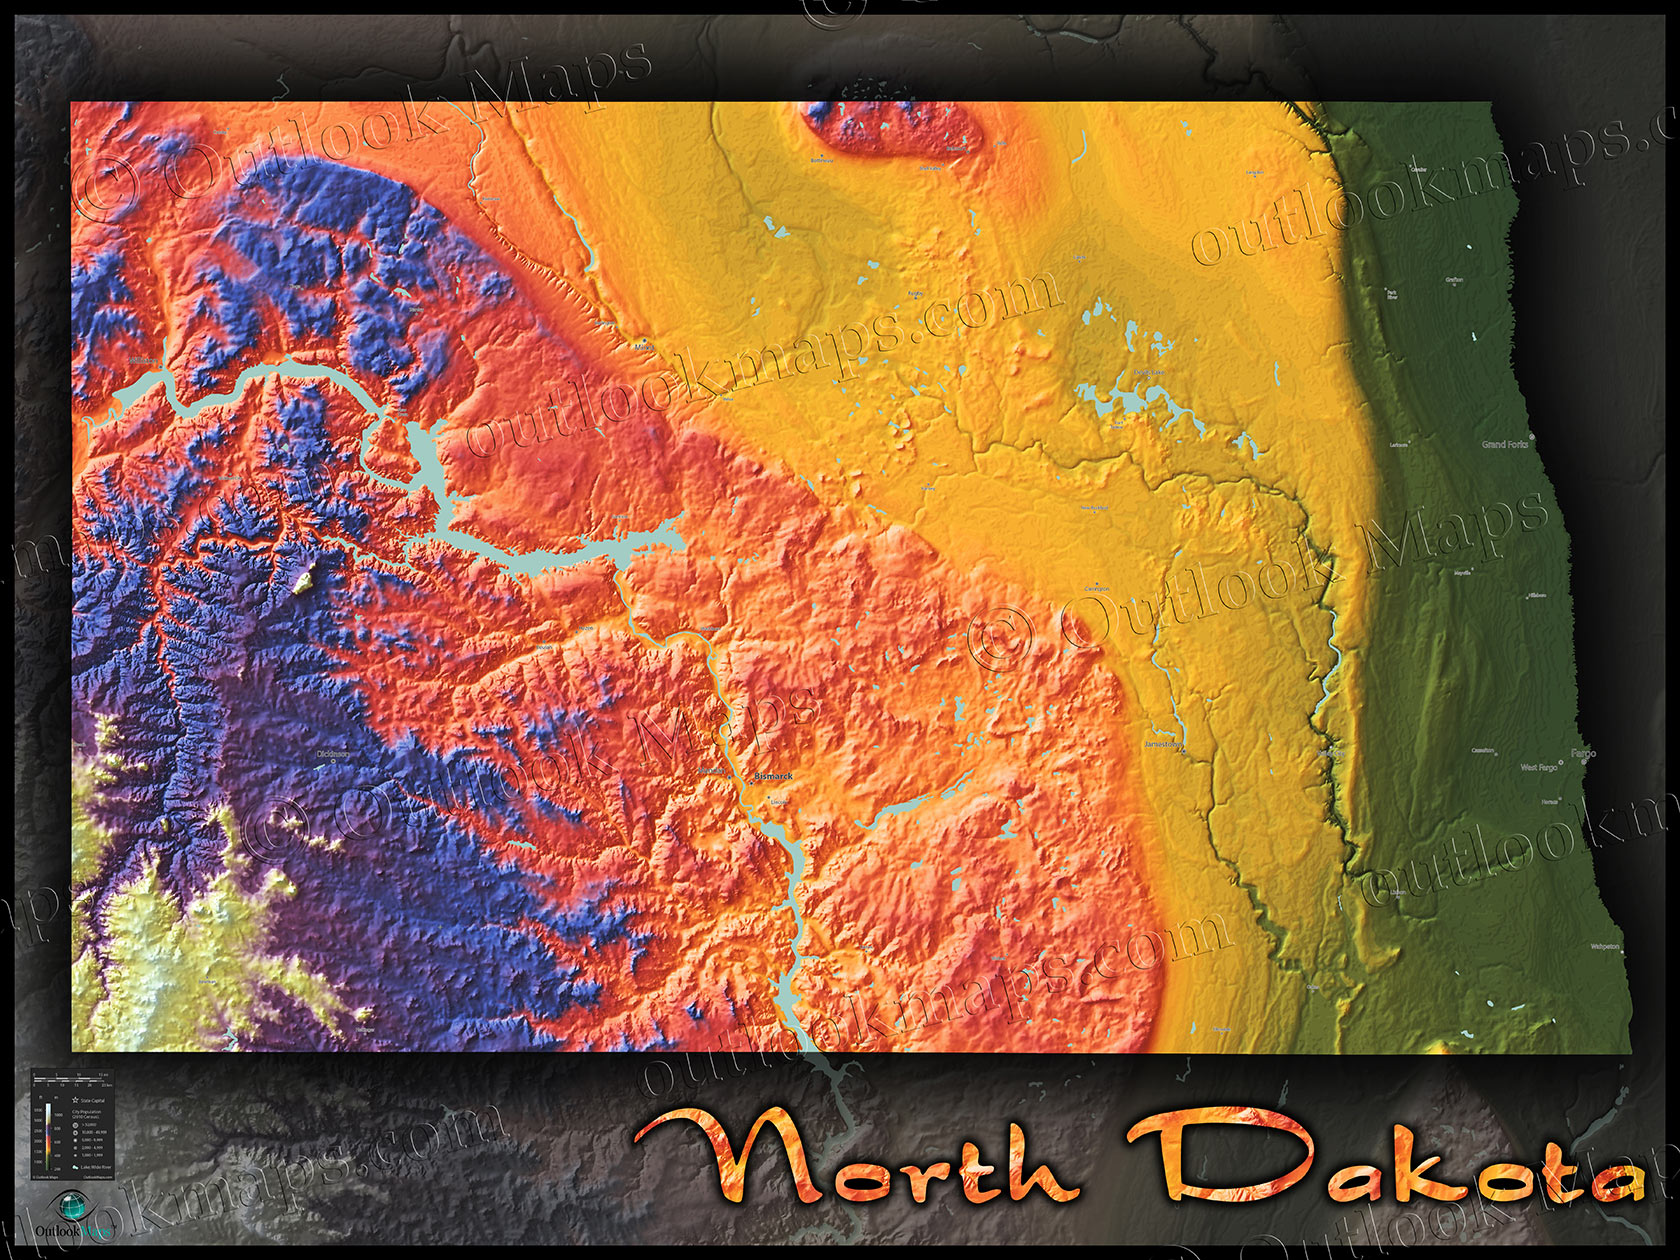 North Dakota Map Colorful Topography Of Physical Features - North dakota physical map